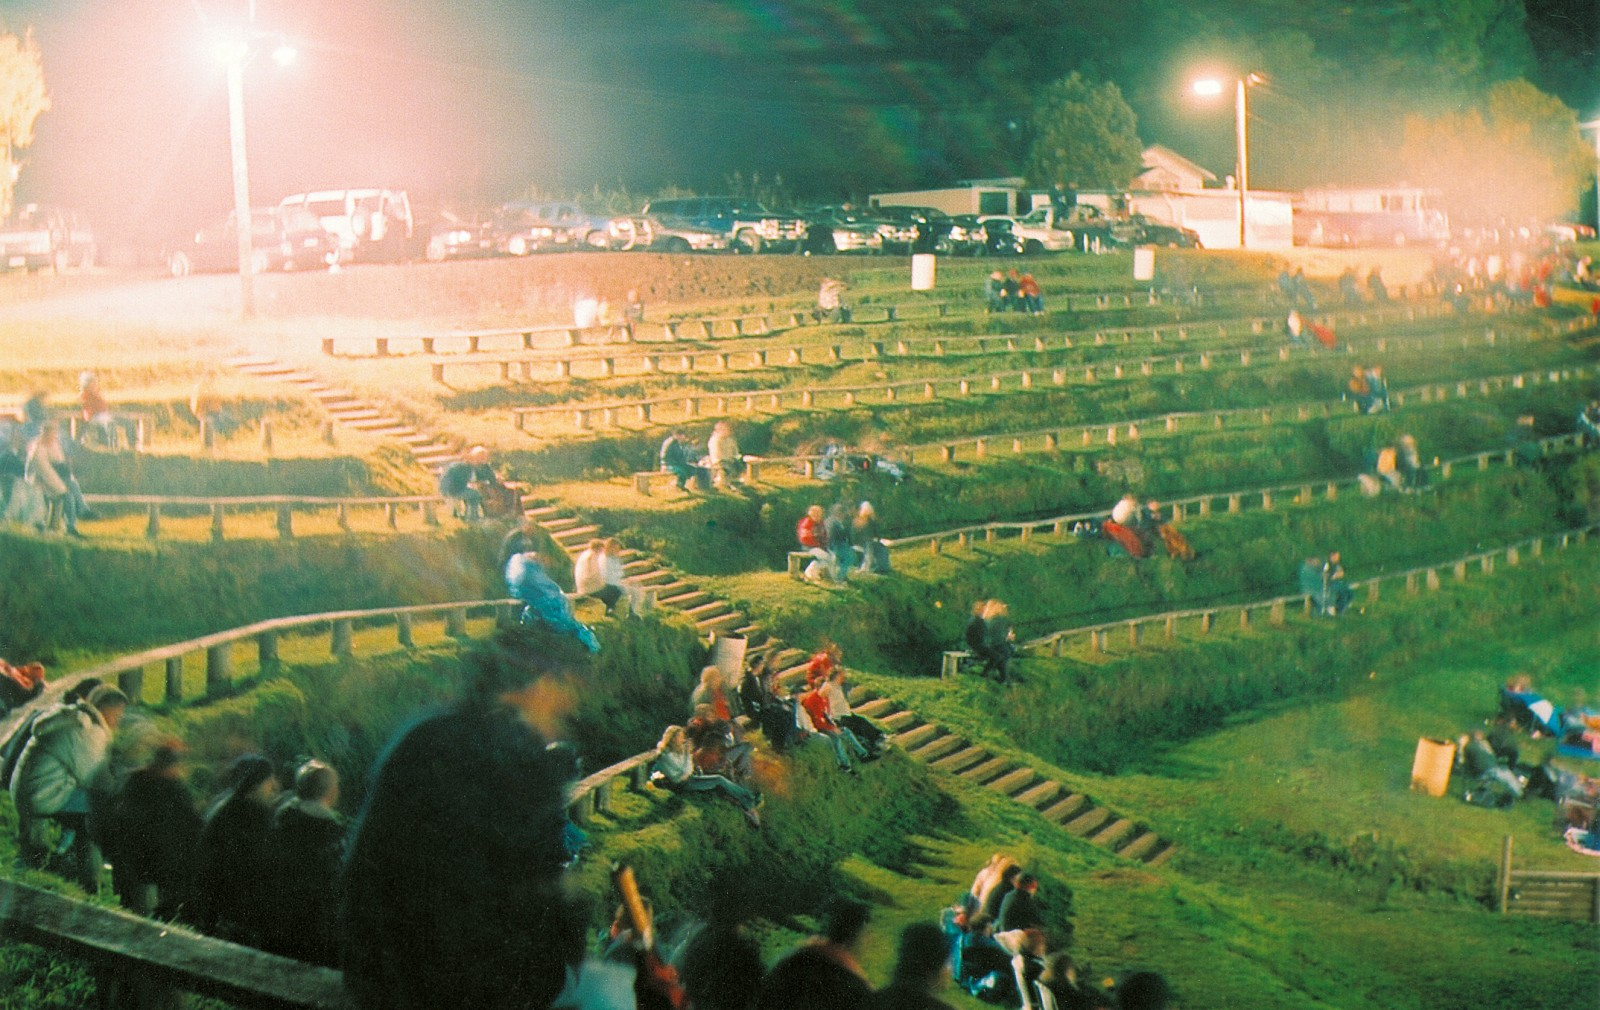 Wrapping up against the chill for a few hours of watching cars racing around a dirt track may not be everybody's idea of a great night out, but spectator numbers at Speedway New Zealand's 23 venues, including Paradise Valley Raceway, in Rotorua, are substantial: between 500,000 and 700,000 a year.